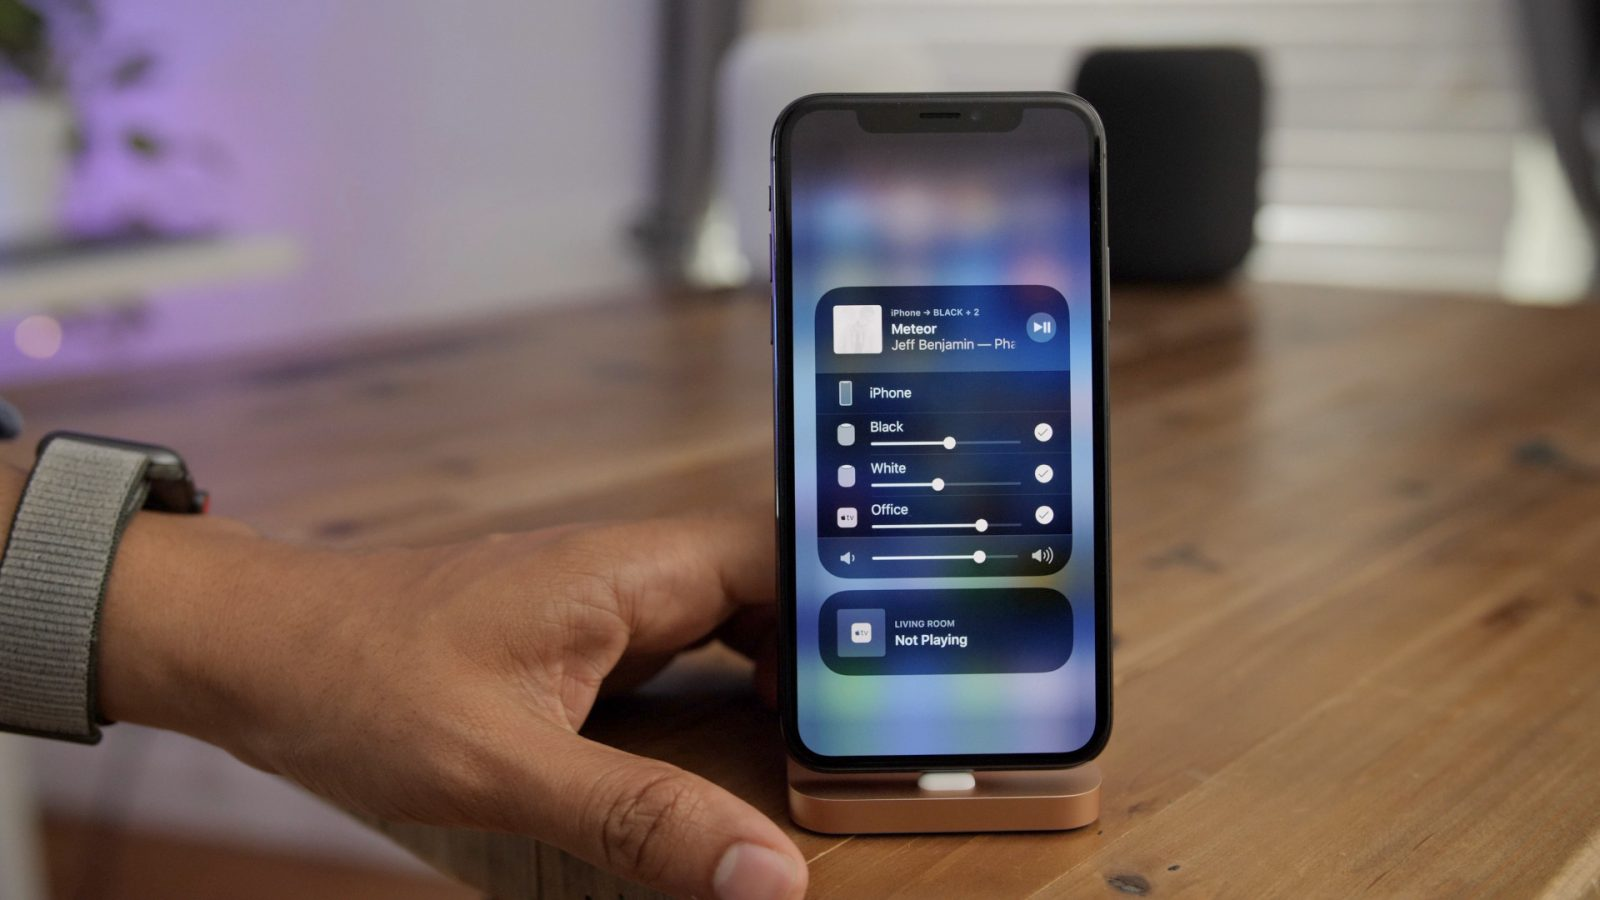 How to create a multi-room AirPlay 2 experience on iPhone